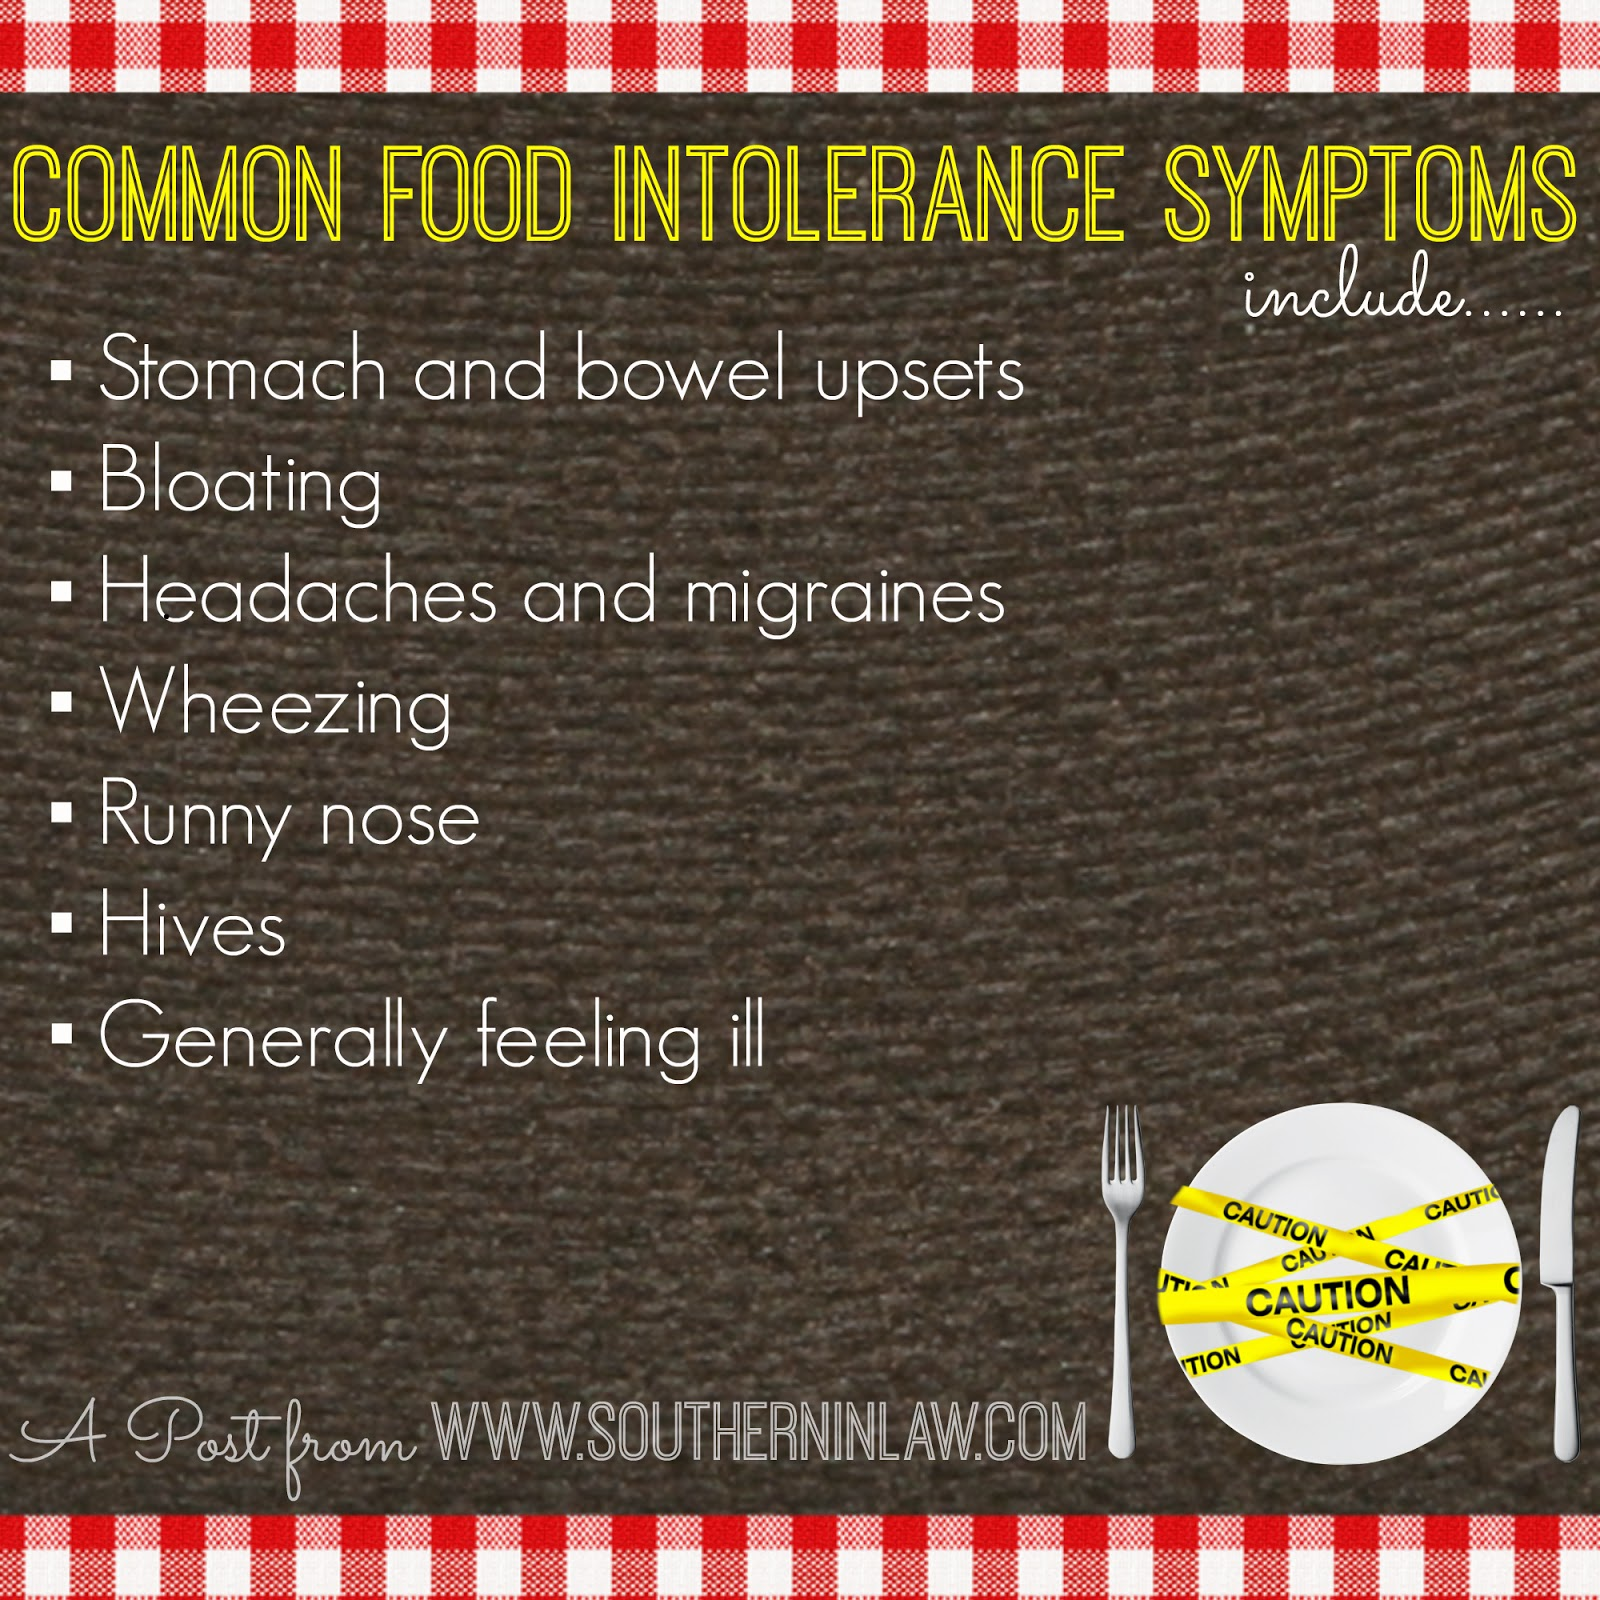 Common food intolerance symptoms - Do I have a food intolerance? - The difference between food allergies and intolerances